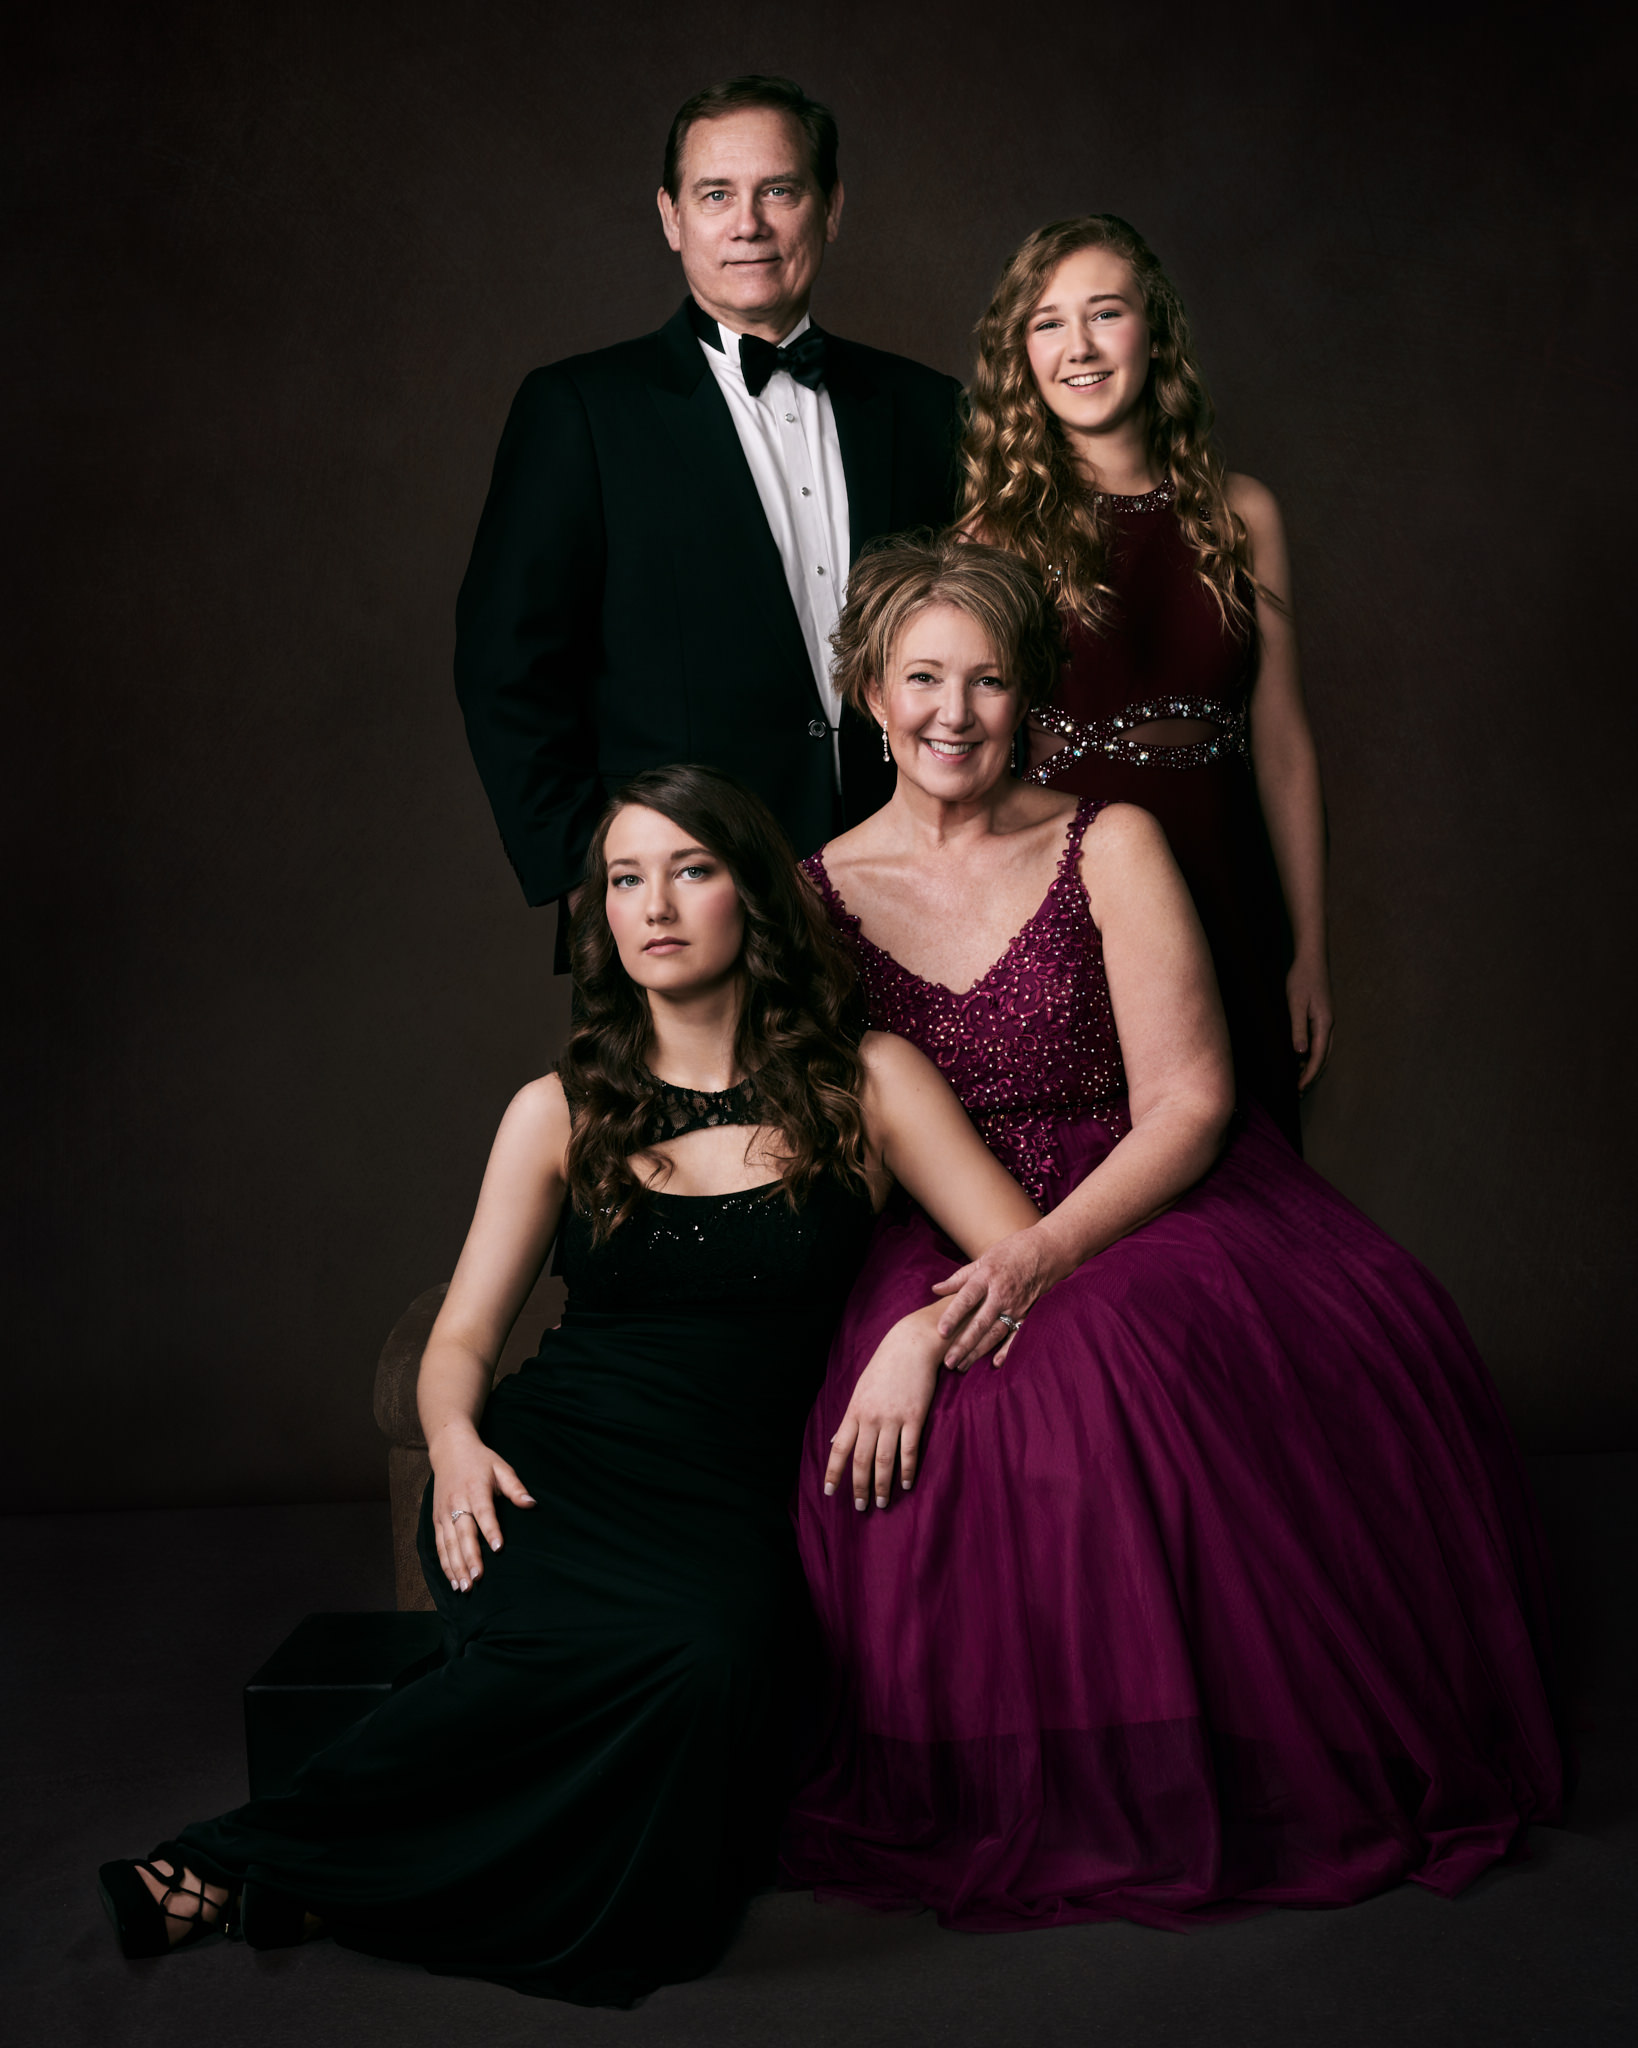 Ben-Marcum-Photography-Louisville-Portrait-Photographer-Family-Portraits-Billings-Family-Portraits-Apr-04-2019-029